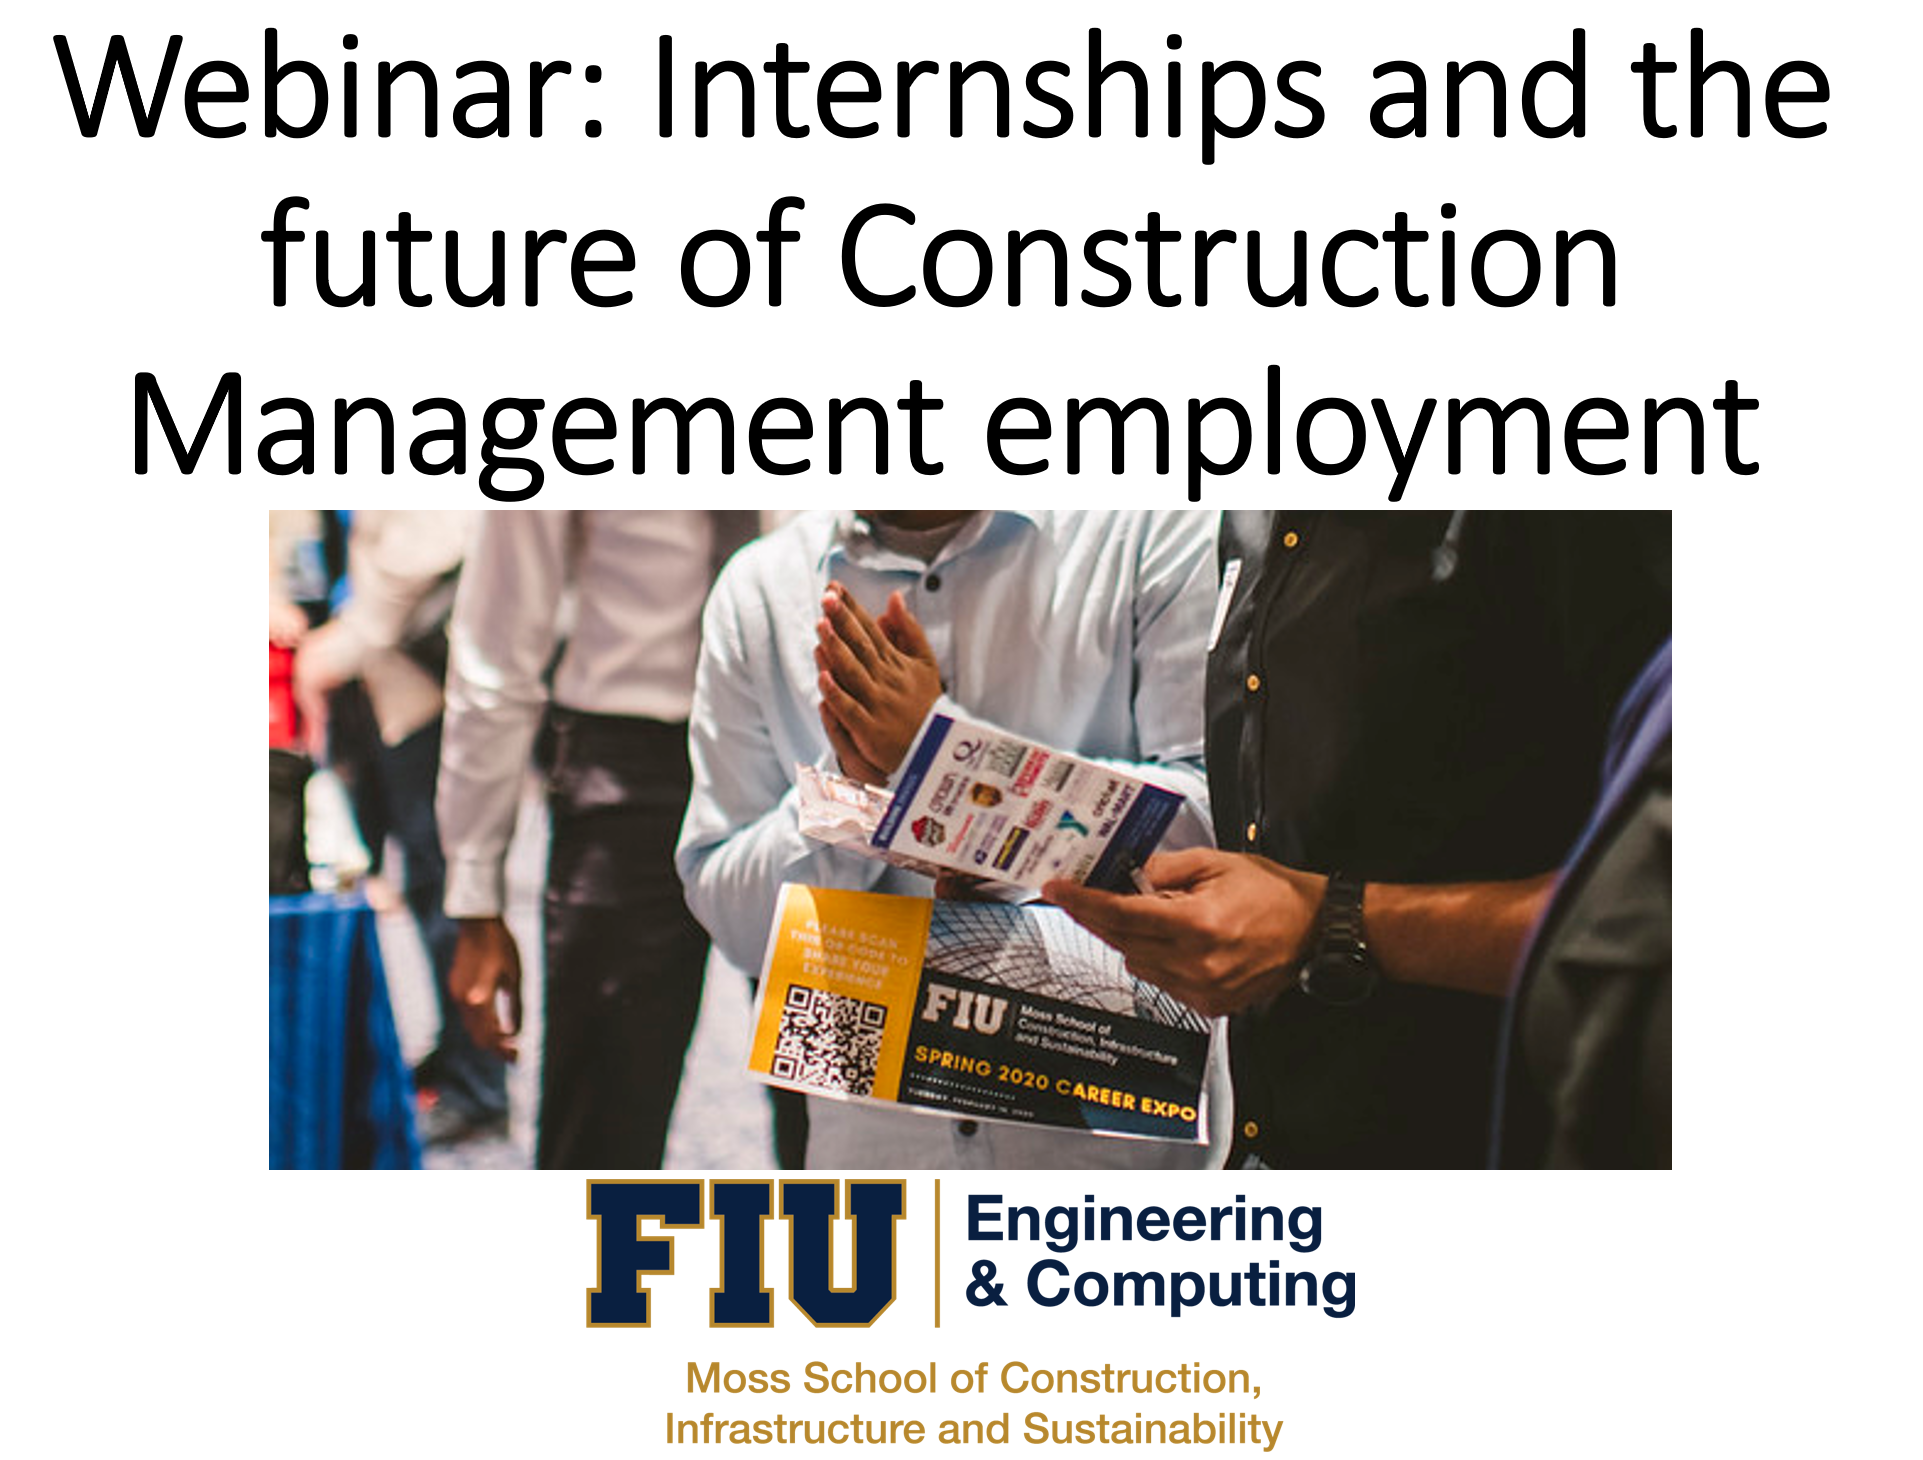 Webinar: Internships and the future of Construction Management employment